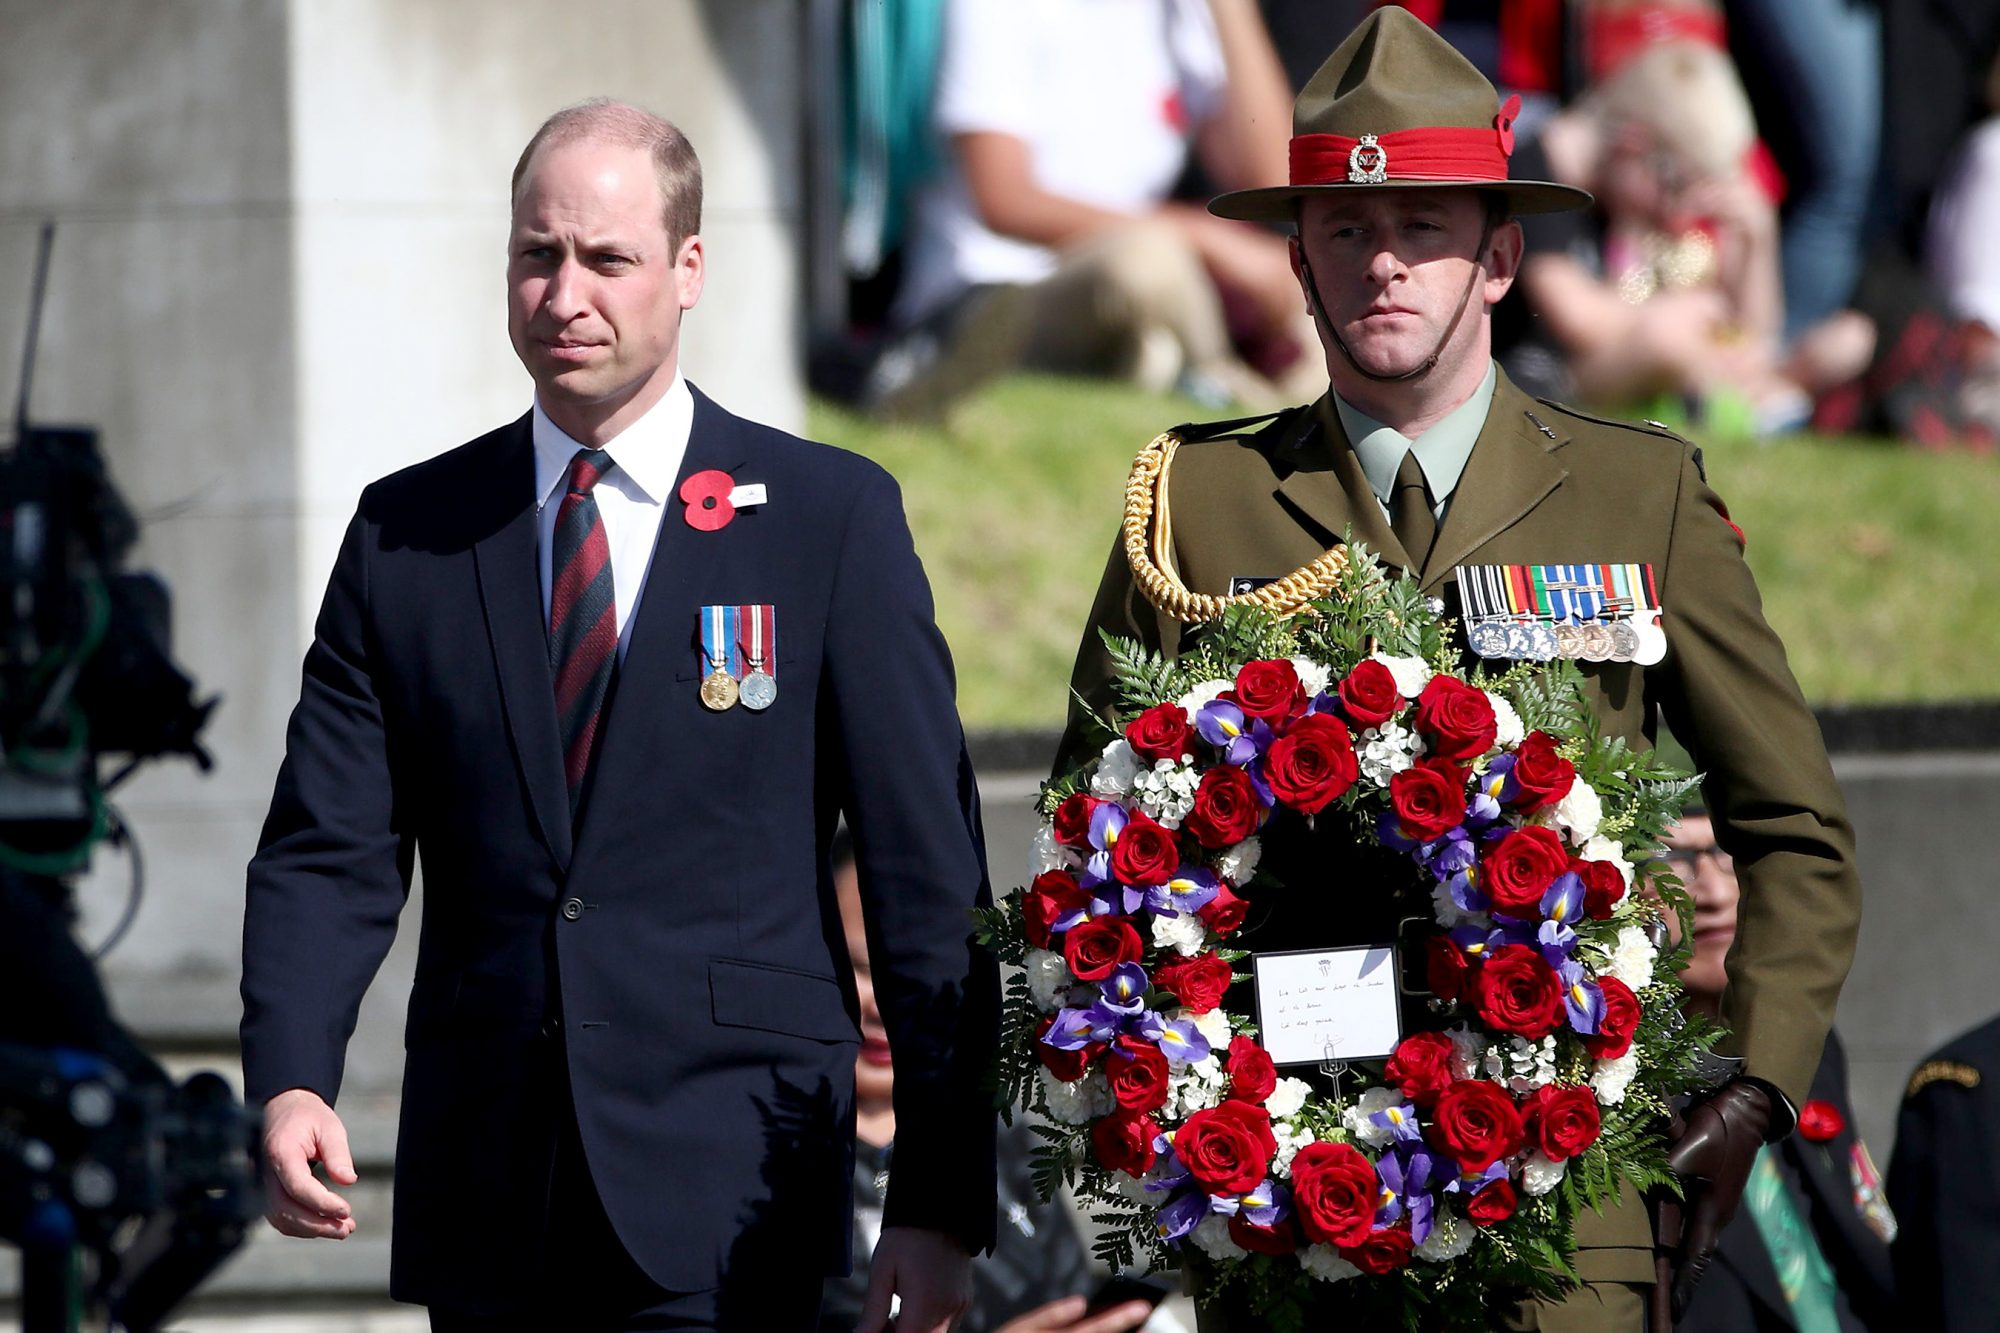 Prince William attends the Anzac Day